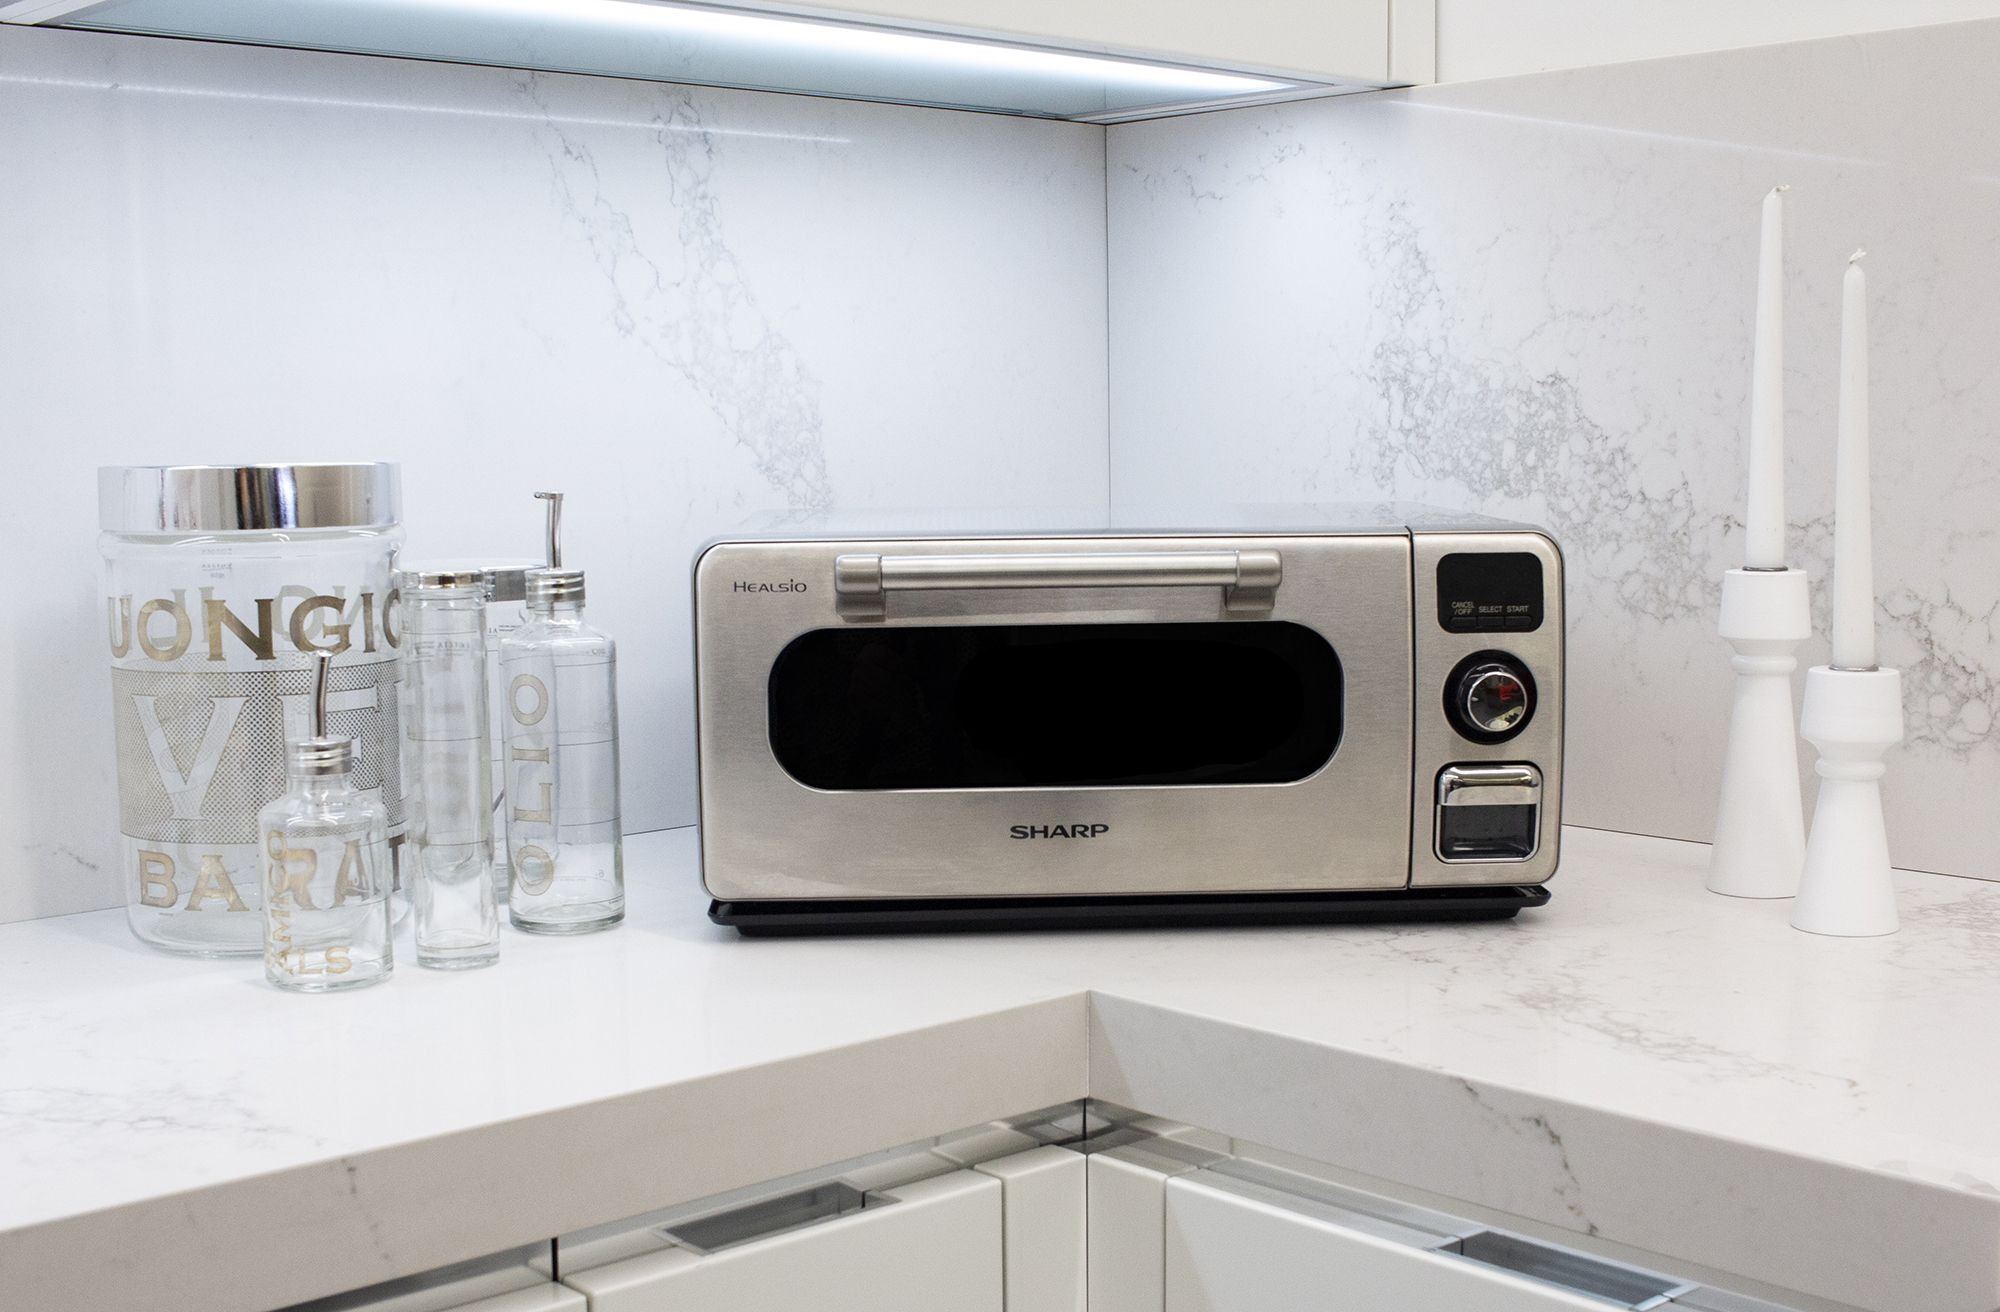 The Sharp Superheated Steam Countertop Oven  What will you